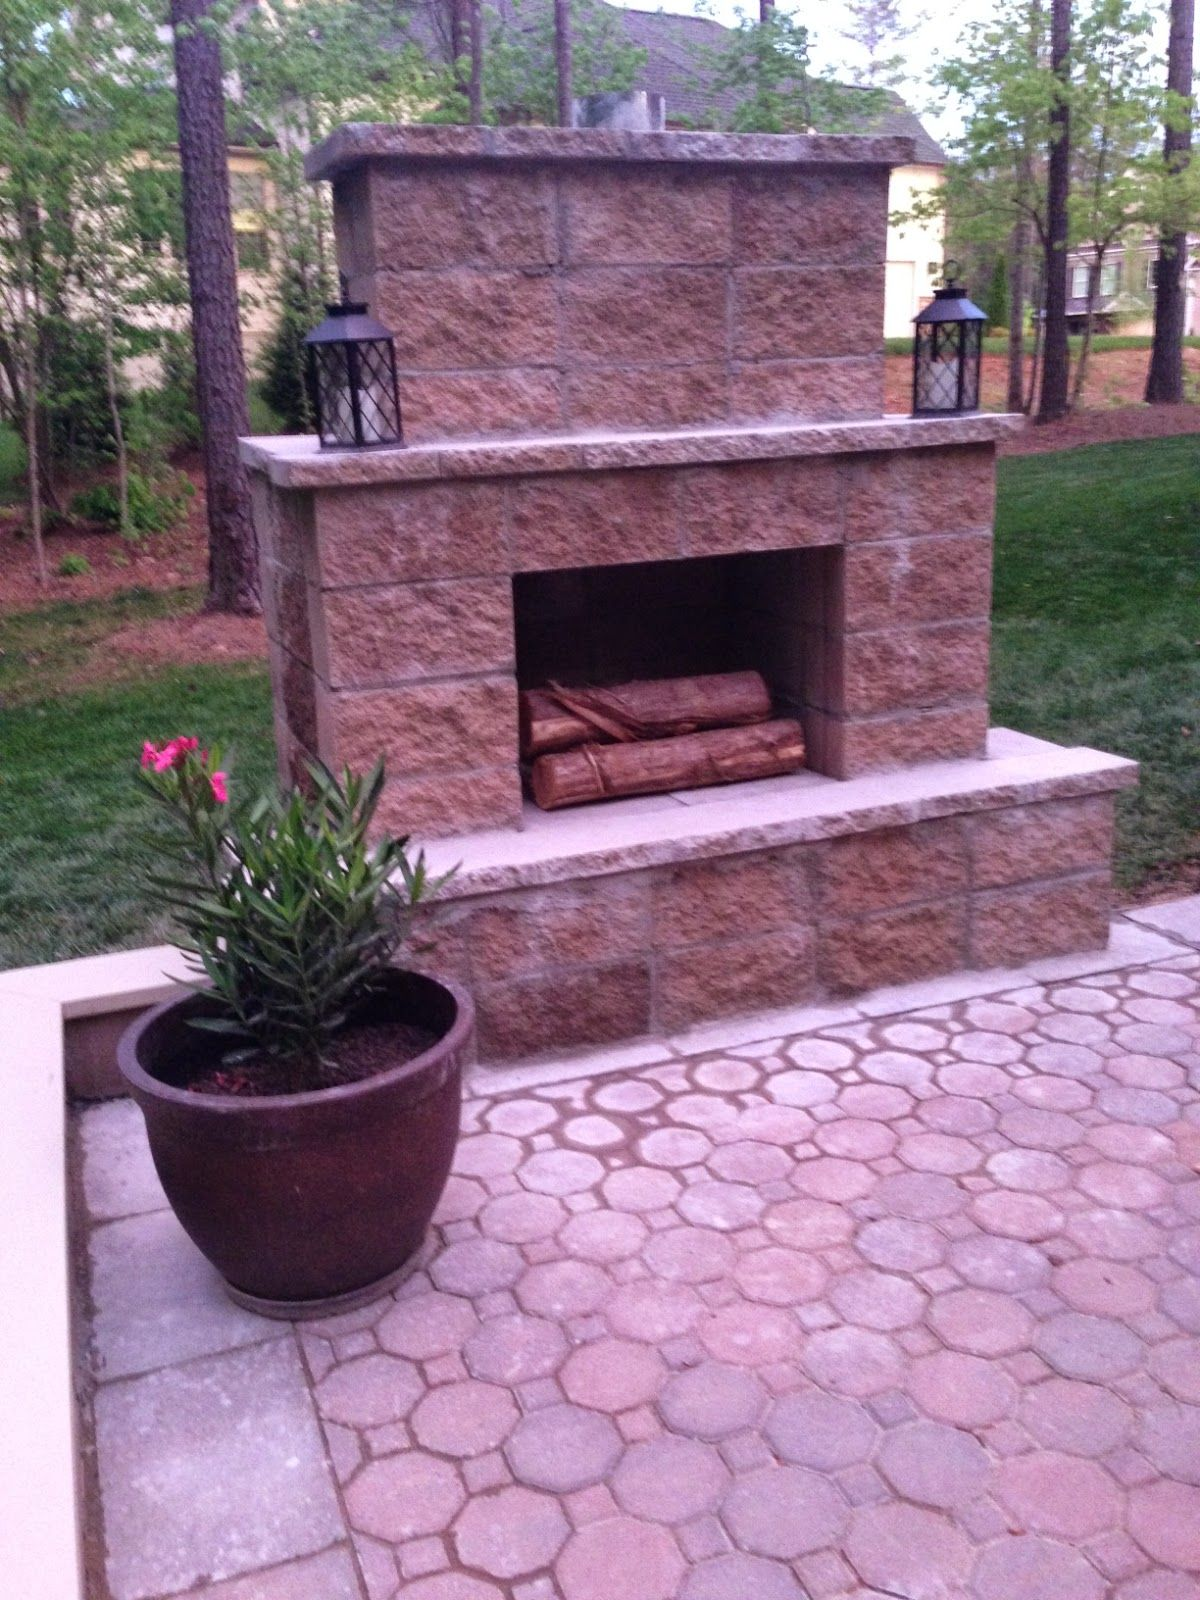 Life In The Barbie Dream House Diy Paver Patio And Outdoor Fireplace Reveal Backyard Fireplace Diy Outdoor Fireplace Diy Patio Pavers